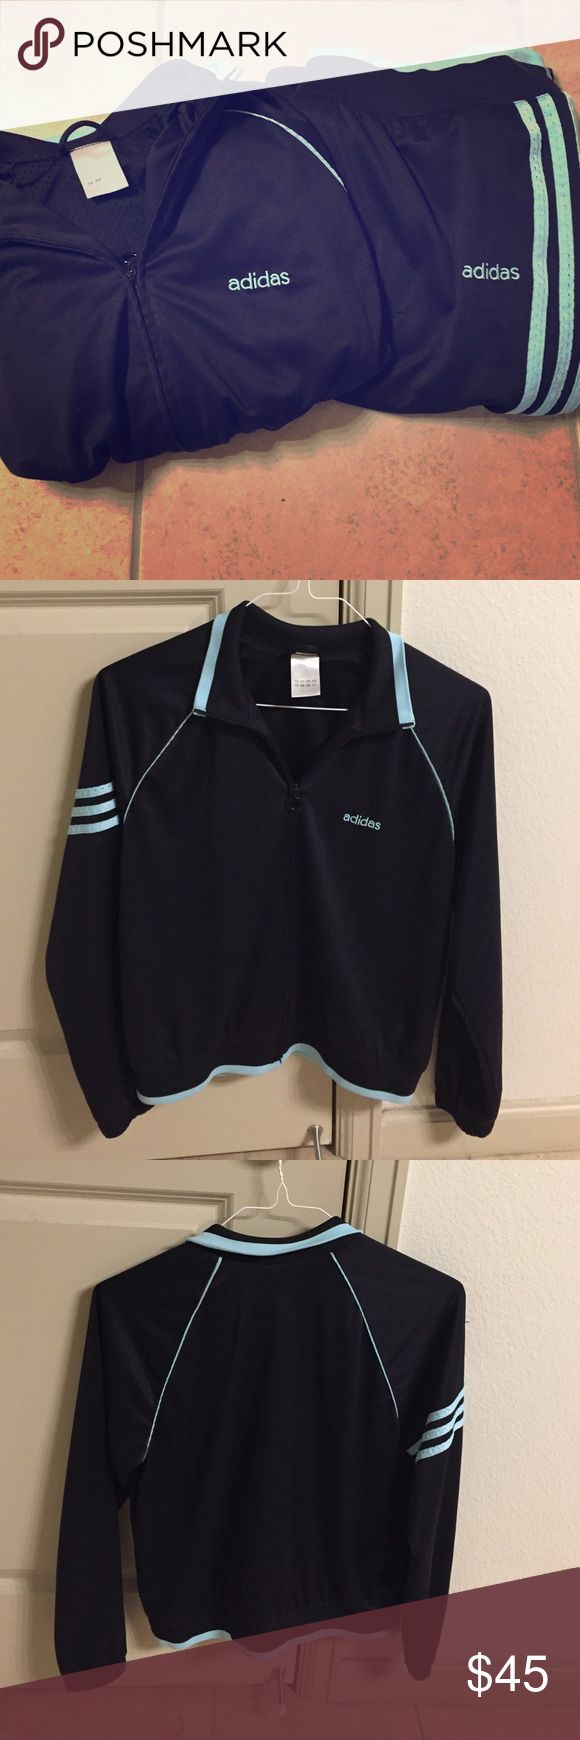 Aqua blue stripes Adidas outfit! This is a black with aqua blue stripes, size large Adidas outfit. Both items are size large and have no rips or flaws. Perfect for working out in the chilly weather or relaxing at home! If you would like the jacket or pants only, please let me know :) REASONABLE offers considered. No lowballing!!! Don't forget to bundle! 30% off 2+ bundles! Adidas Pants Track Pants & Joggers